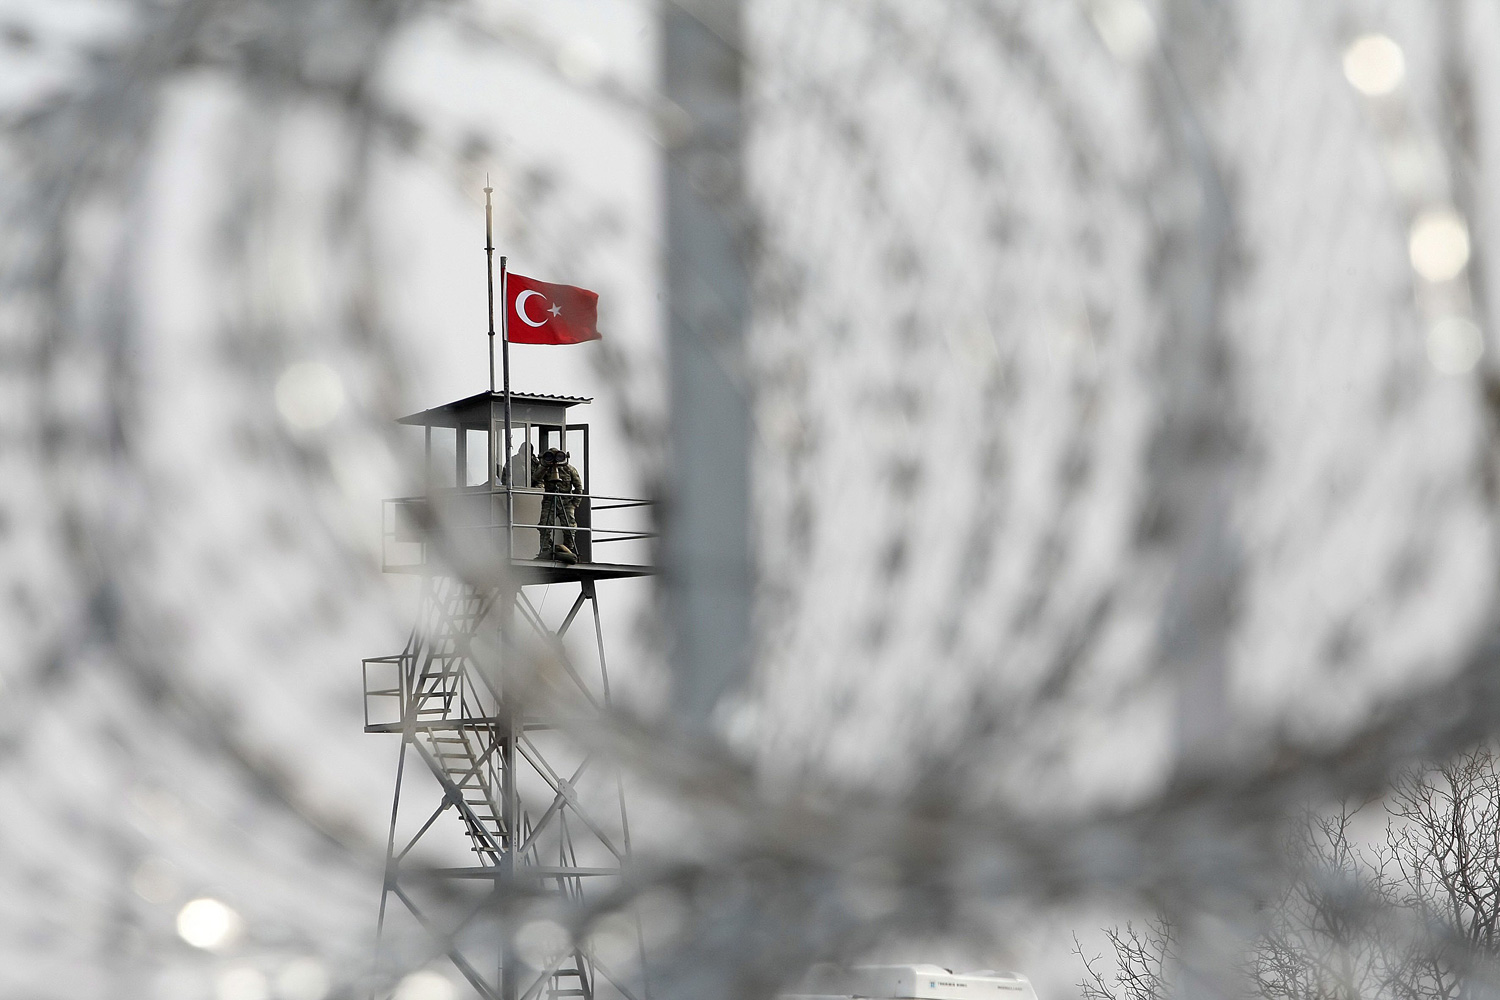 A watchtower is shown at a portion of a state-of-the-art security fence along a the land border with Turkey, in Nea Vyssa city, Evros, Greece.  In 2011 alone, 54,974 non-legal immigrants clandestinely crossed the Evros border into Greece.